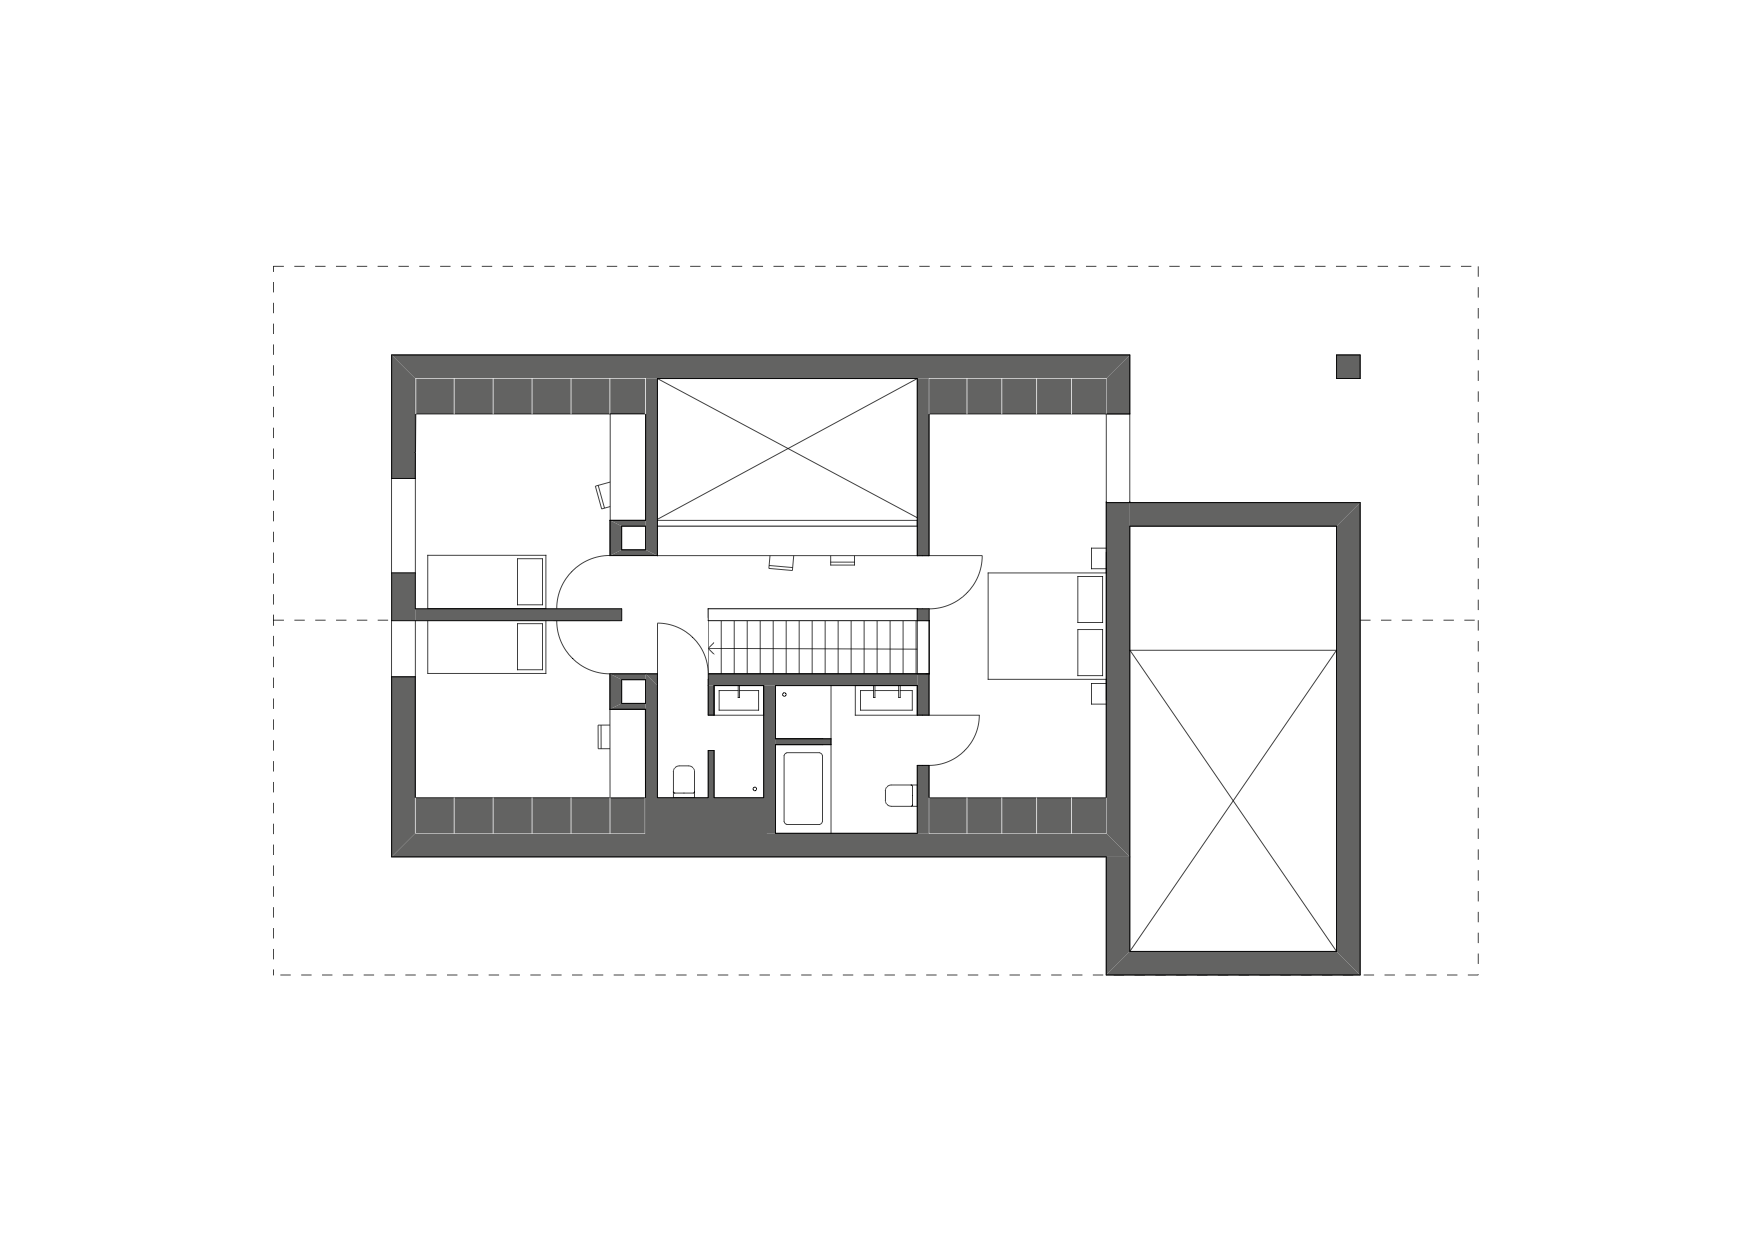 007_Plan_First floor.png